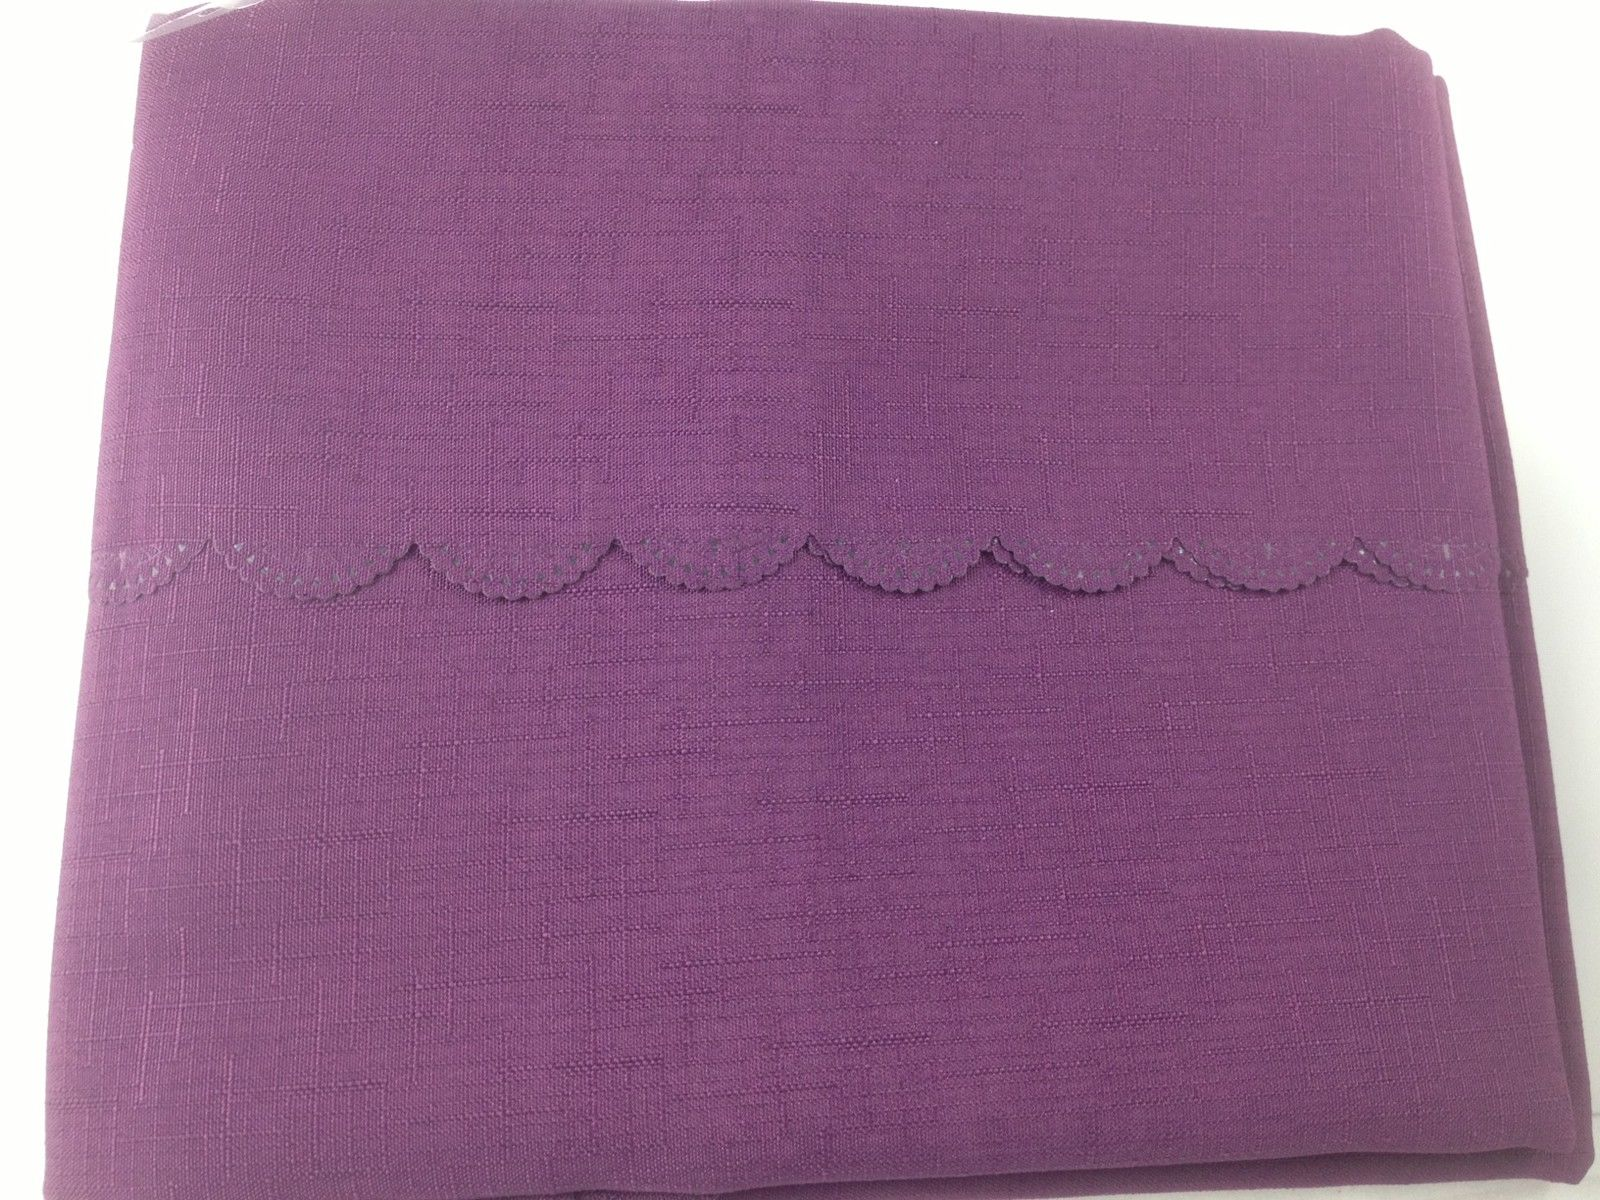 Shell Tablecloth Aubergine 137x229cm Oval